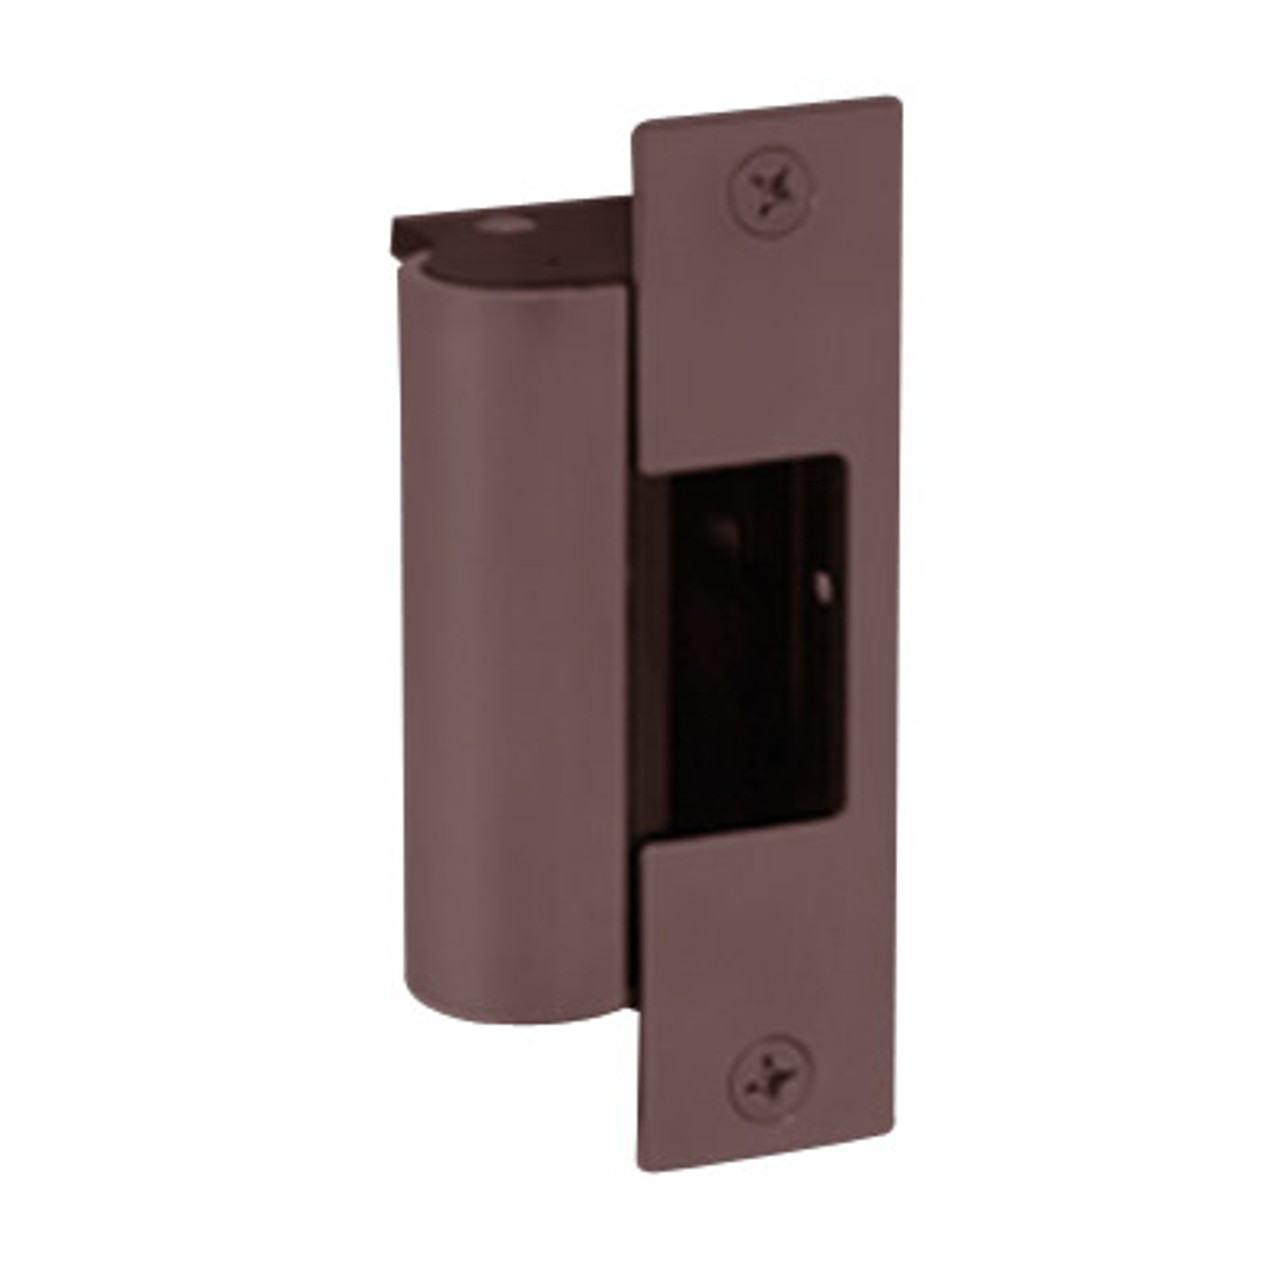 1006-F-613-LBSM Hes Fail Safe Electric Strike Body with Latchbolt Strike Monitor in Bronze Toned Finish